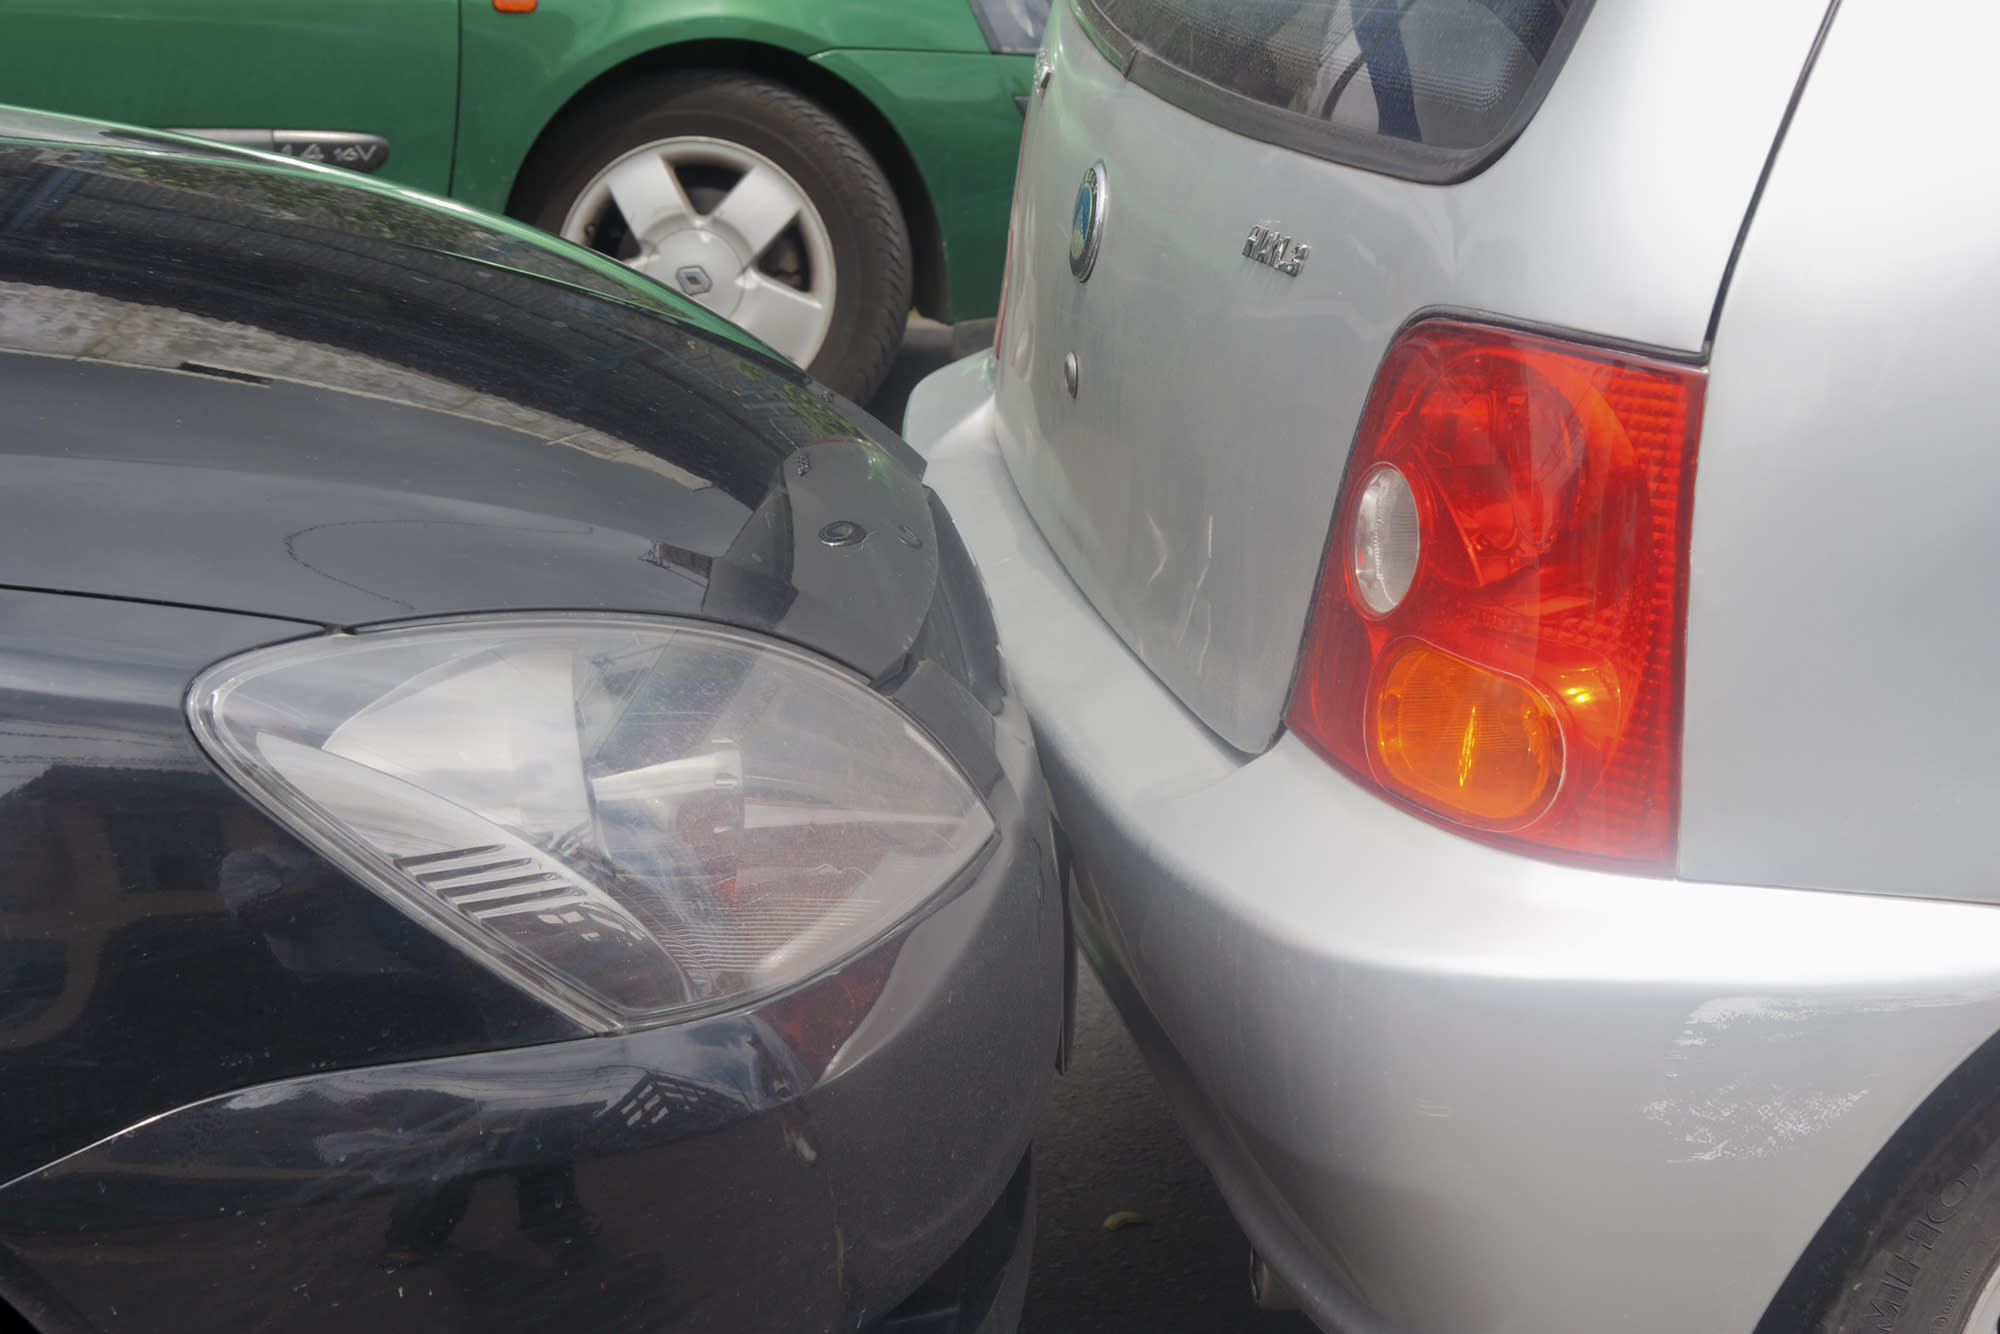 Hitting a parked car: 5 things to understand